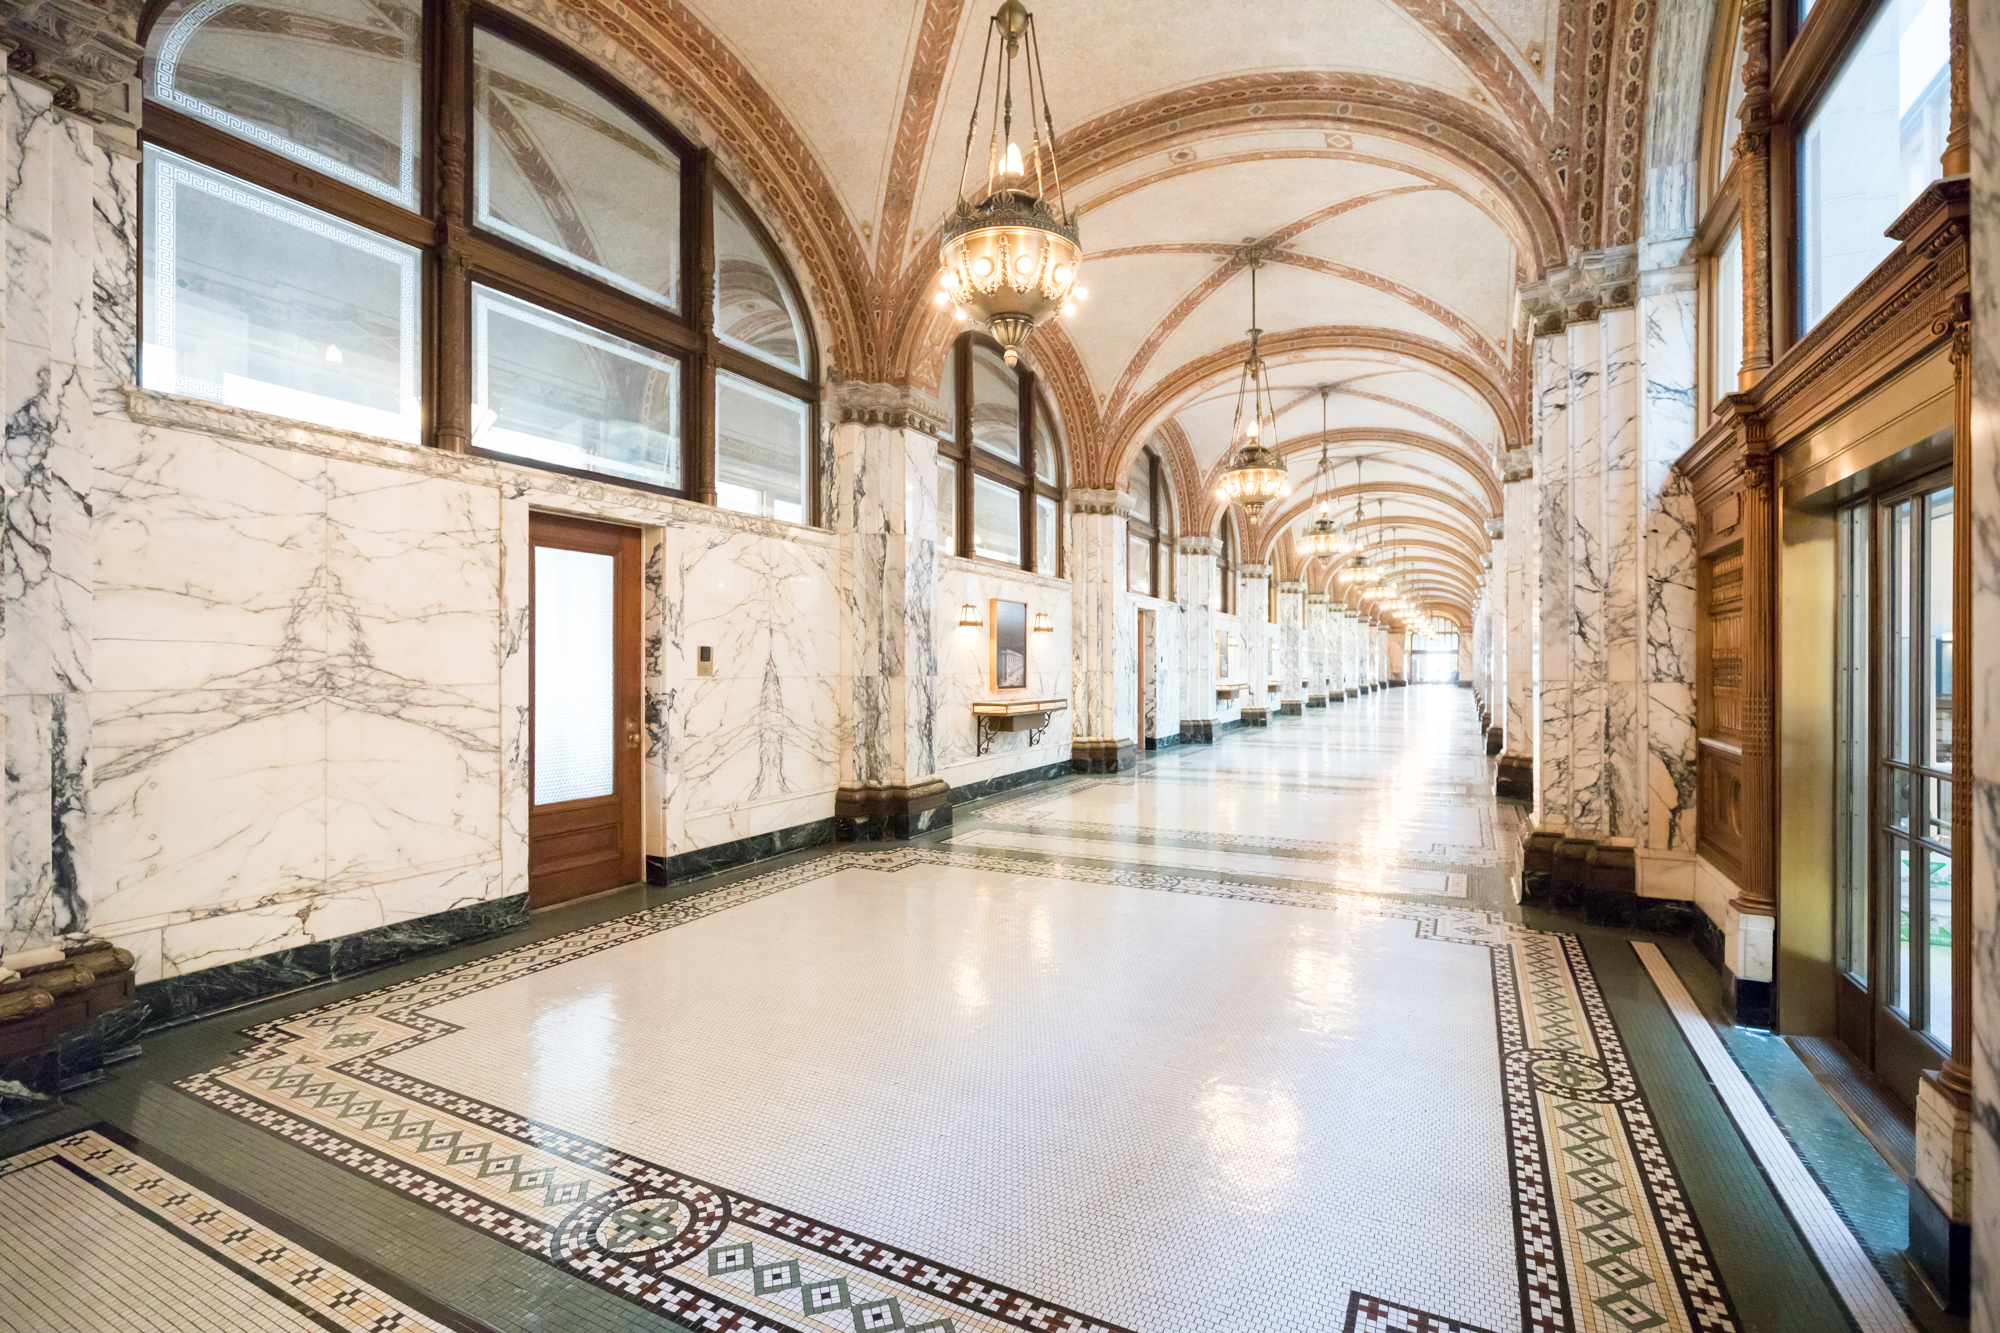 The US Court Of Appeals For The Ninth Circuit A Brief History - Most interesting museums in us